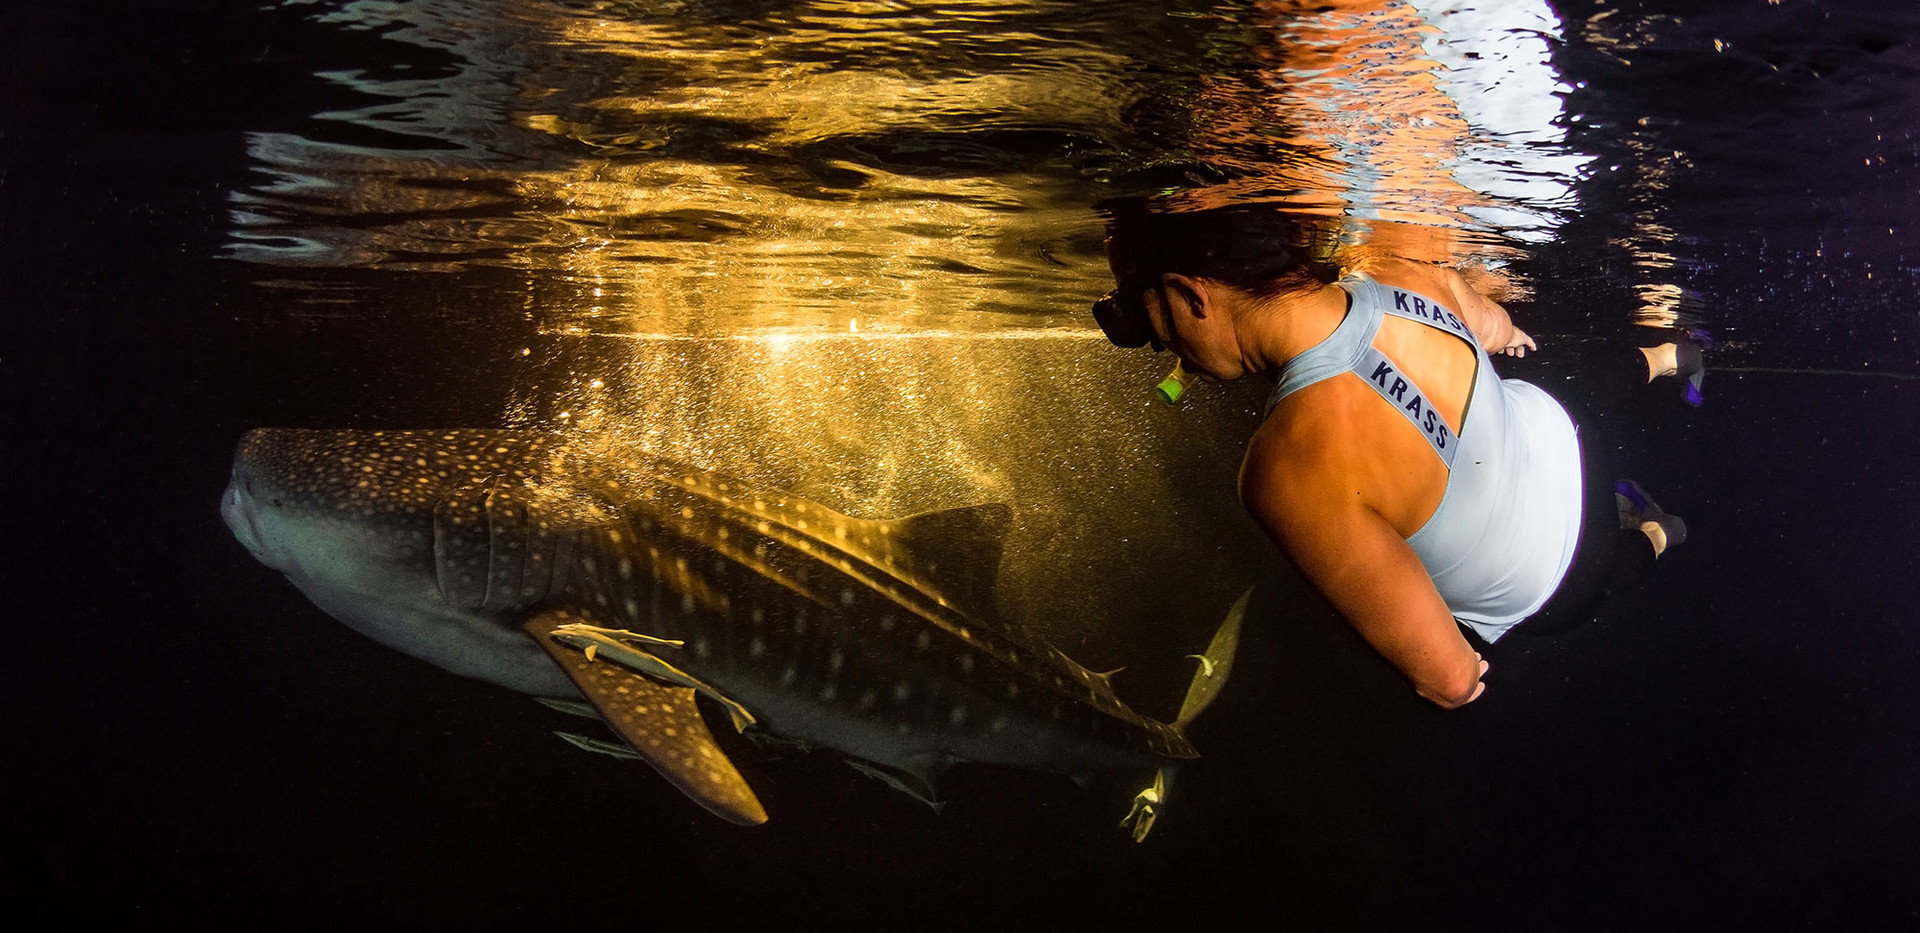 Whale shark by night